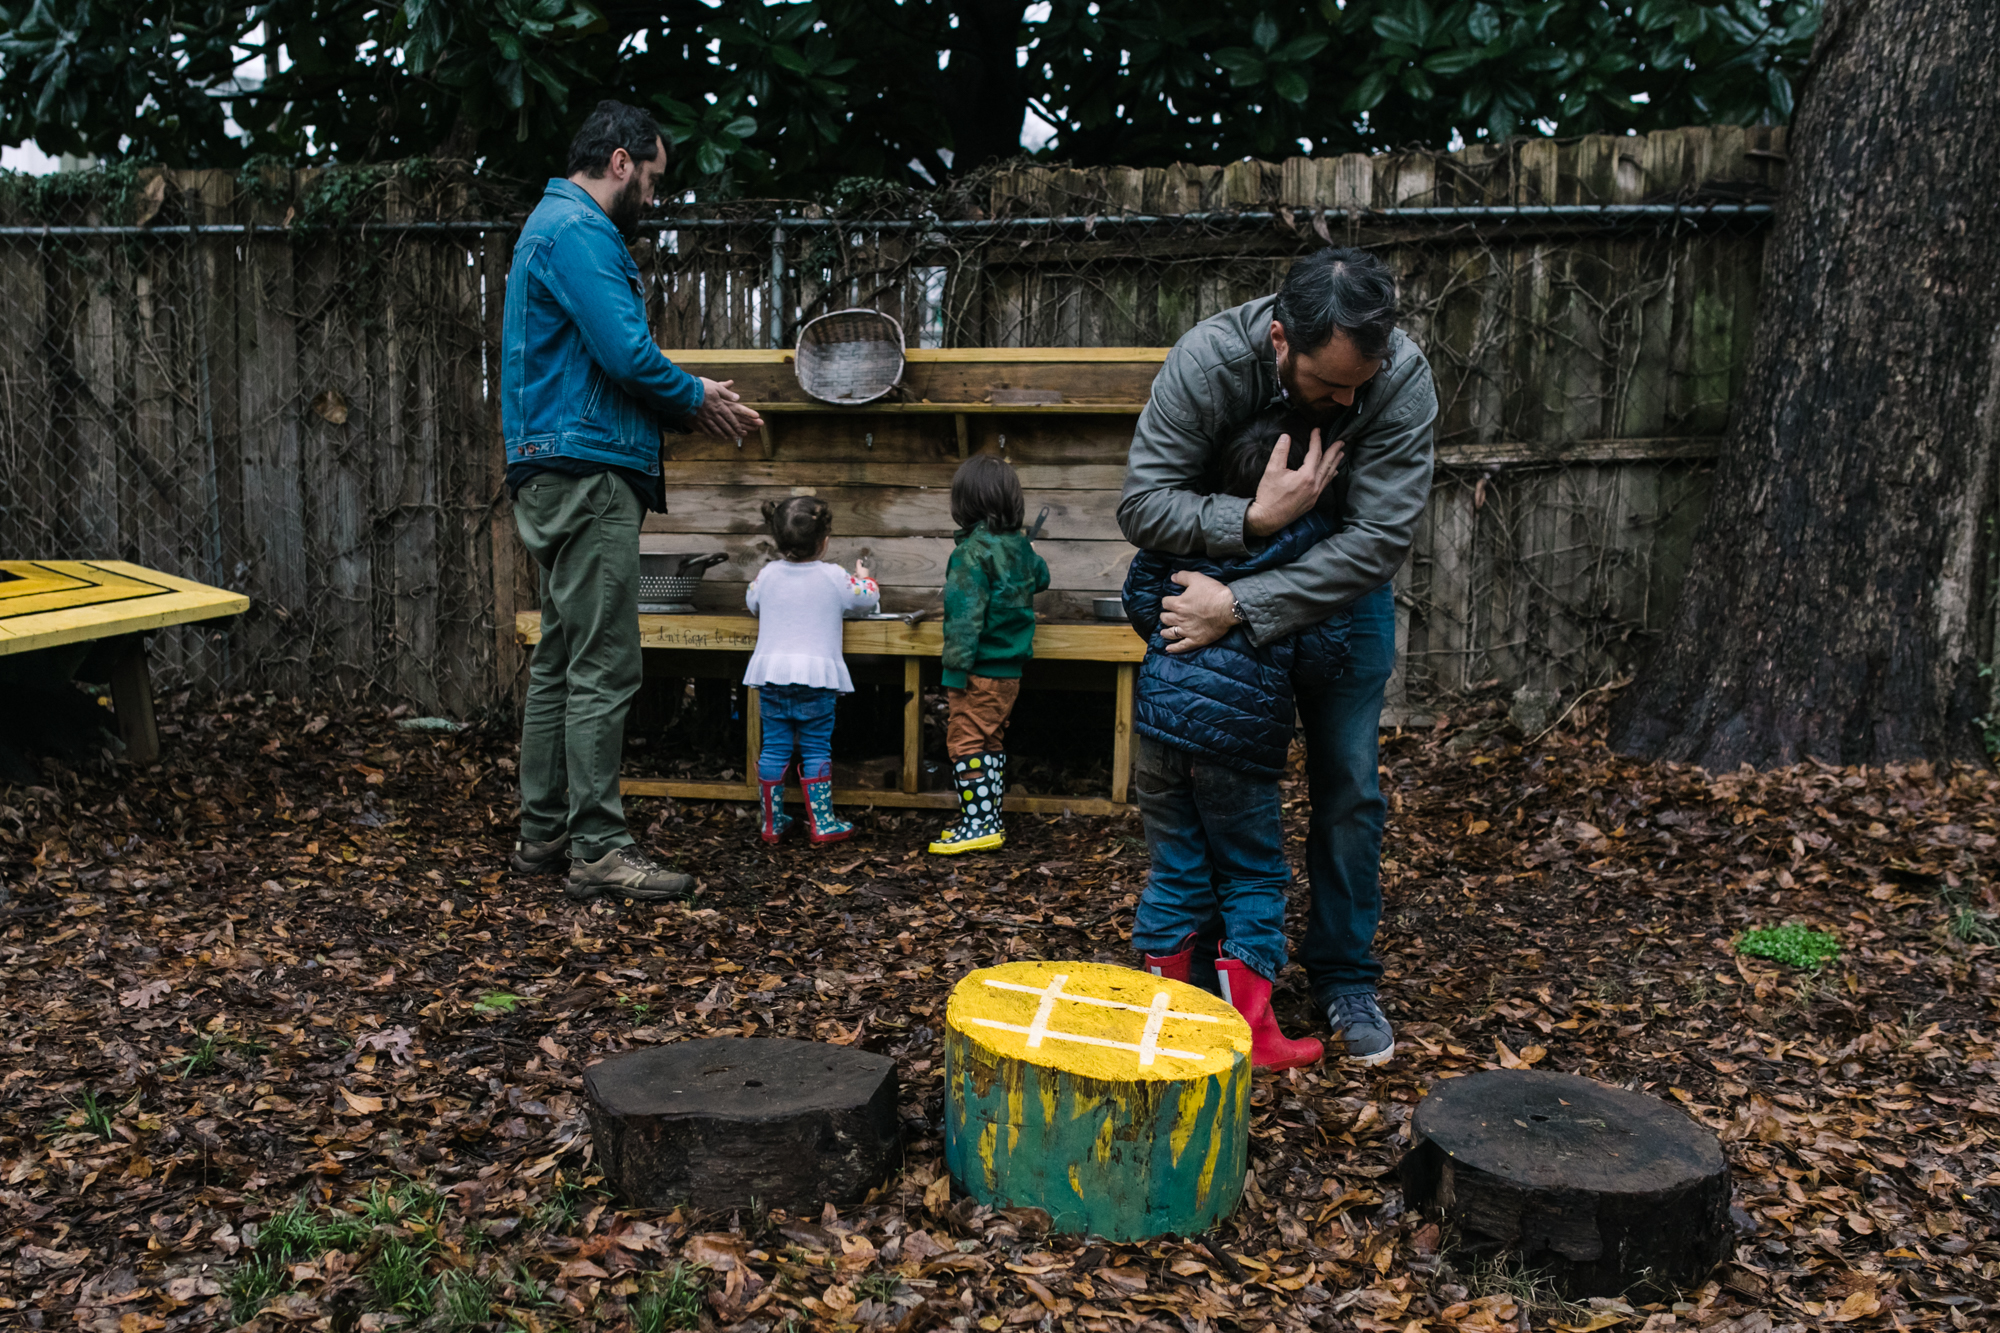 A father comforts his son as two children and a man play at a play kitchen in the background